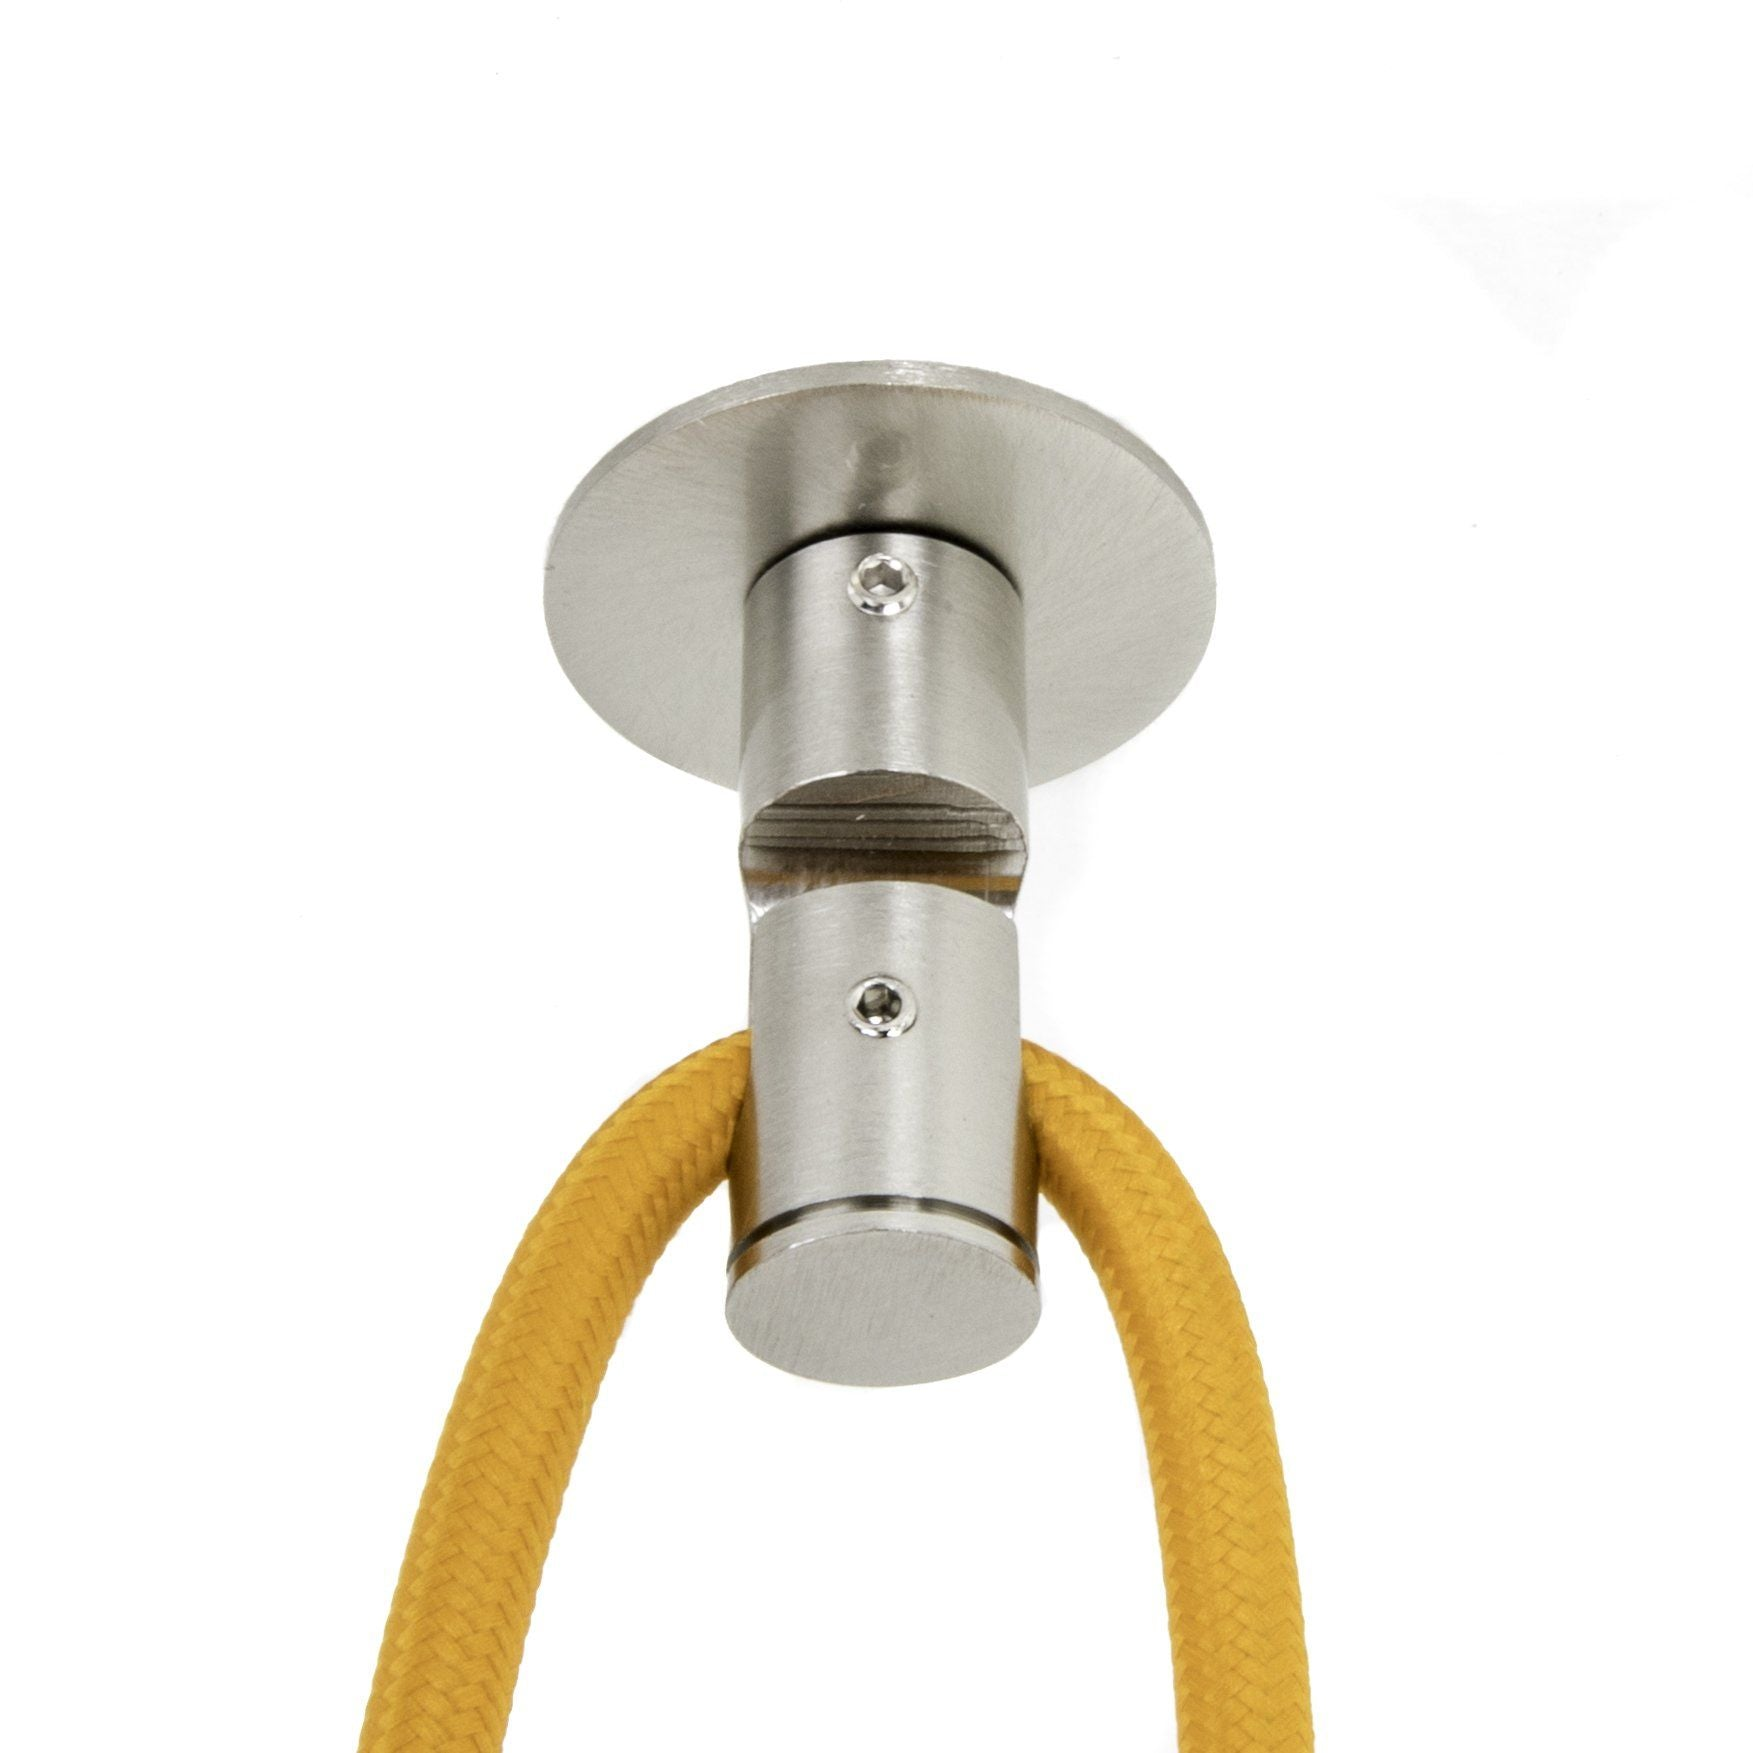 Little bishop pendant light hook color cord company pinch swag hook aloadofball Image collections